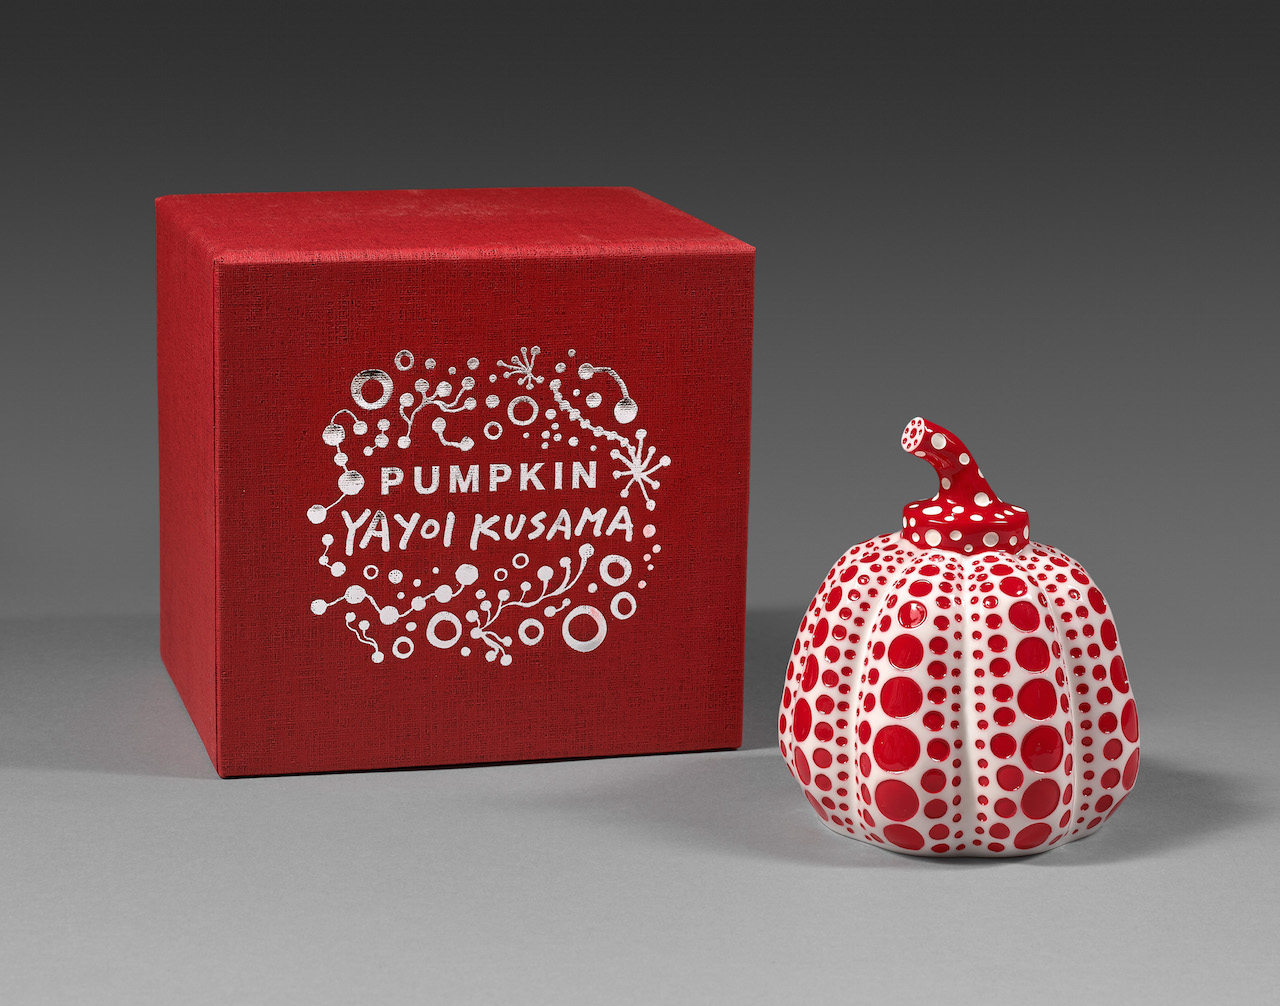 yayoi kusama pumpkin red white vente aux ench res. Black Bedroom Furniture Sets. Home Design Ideas